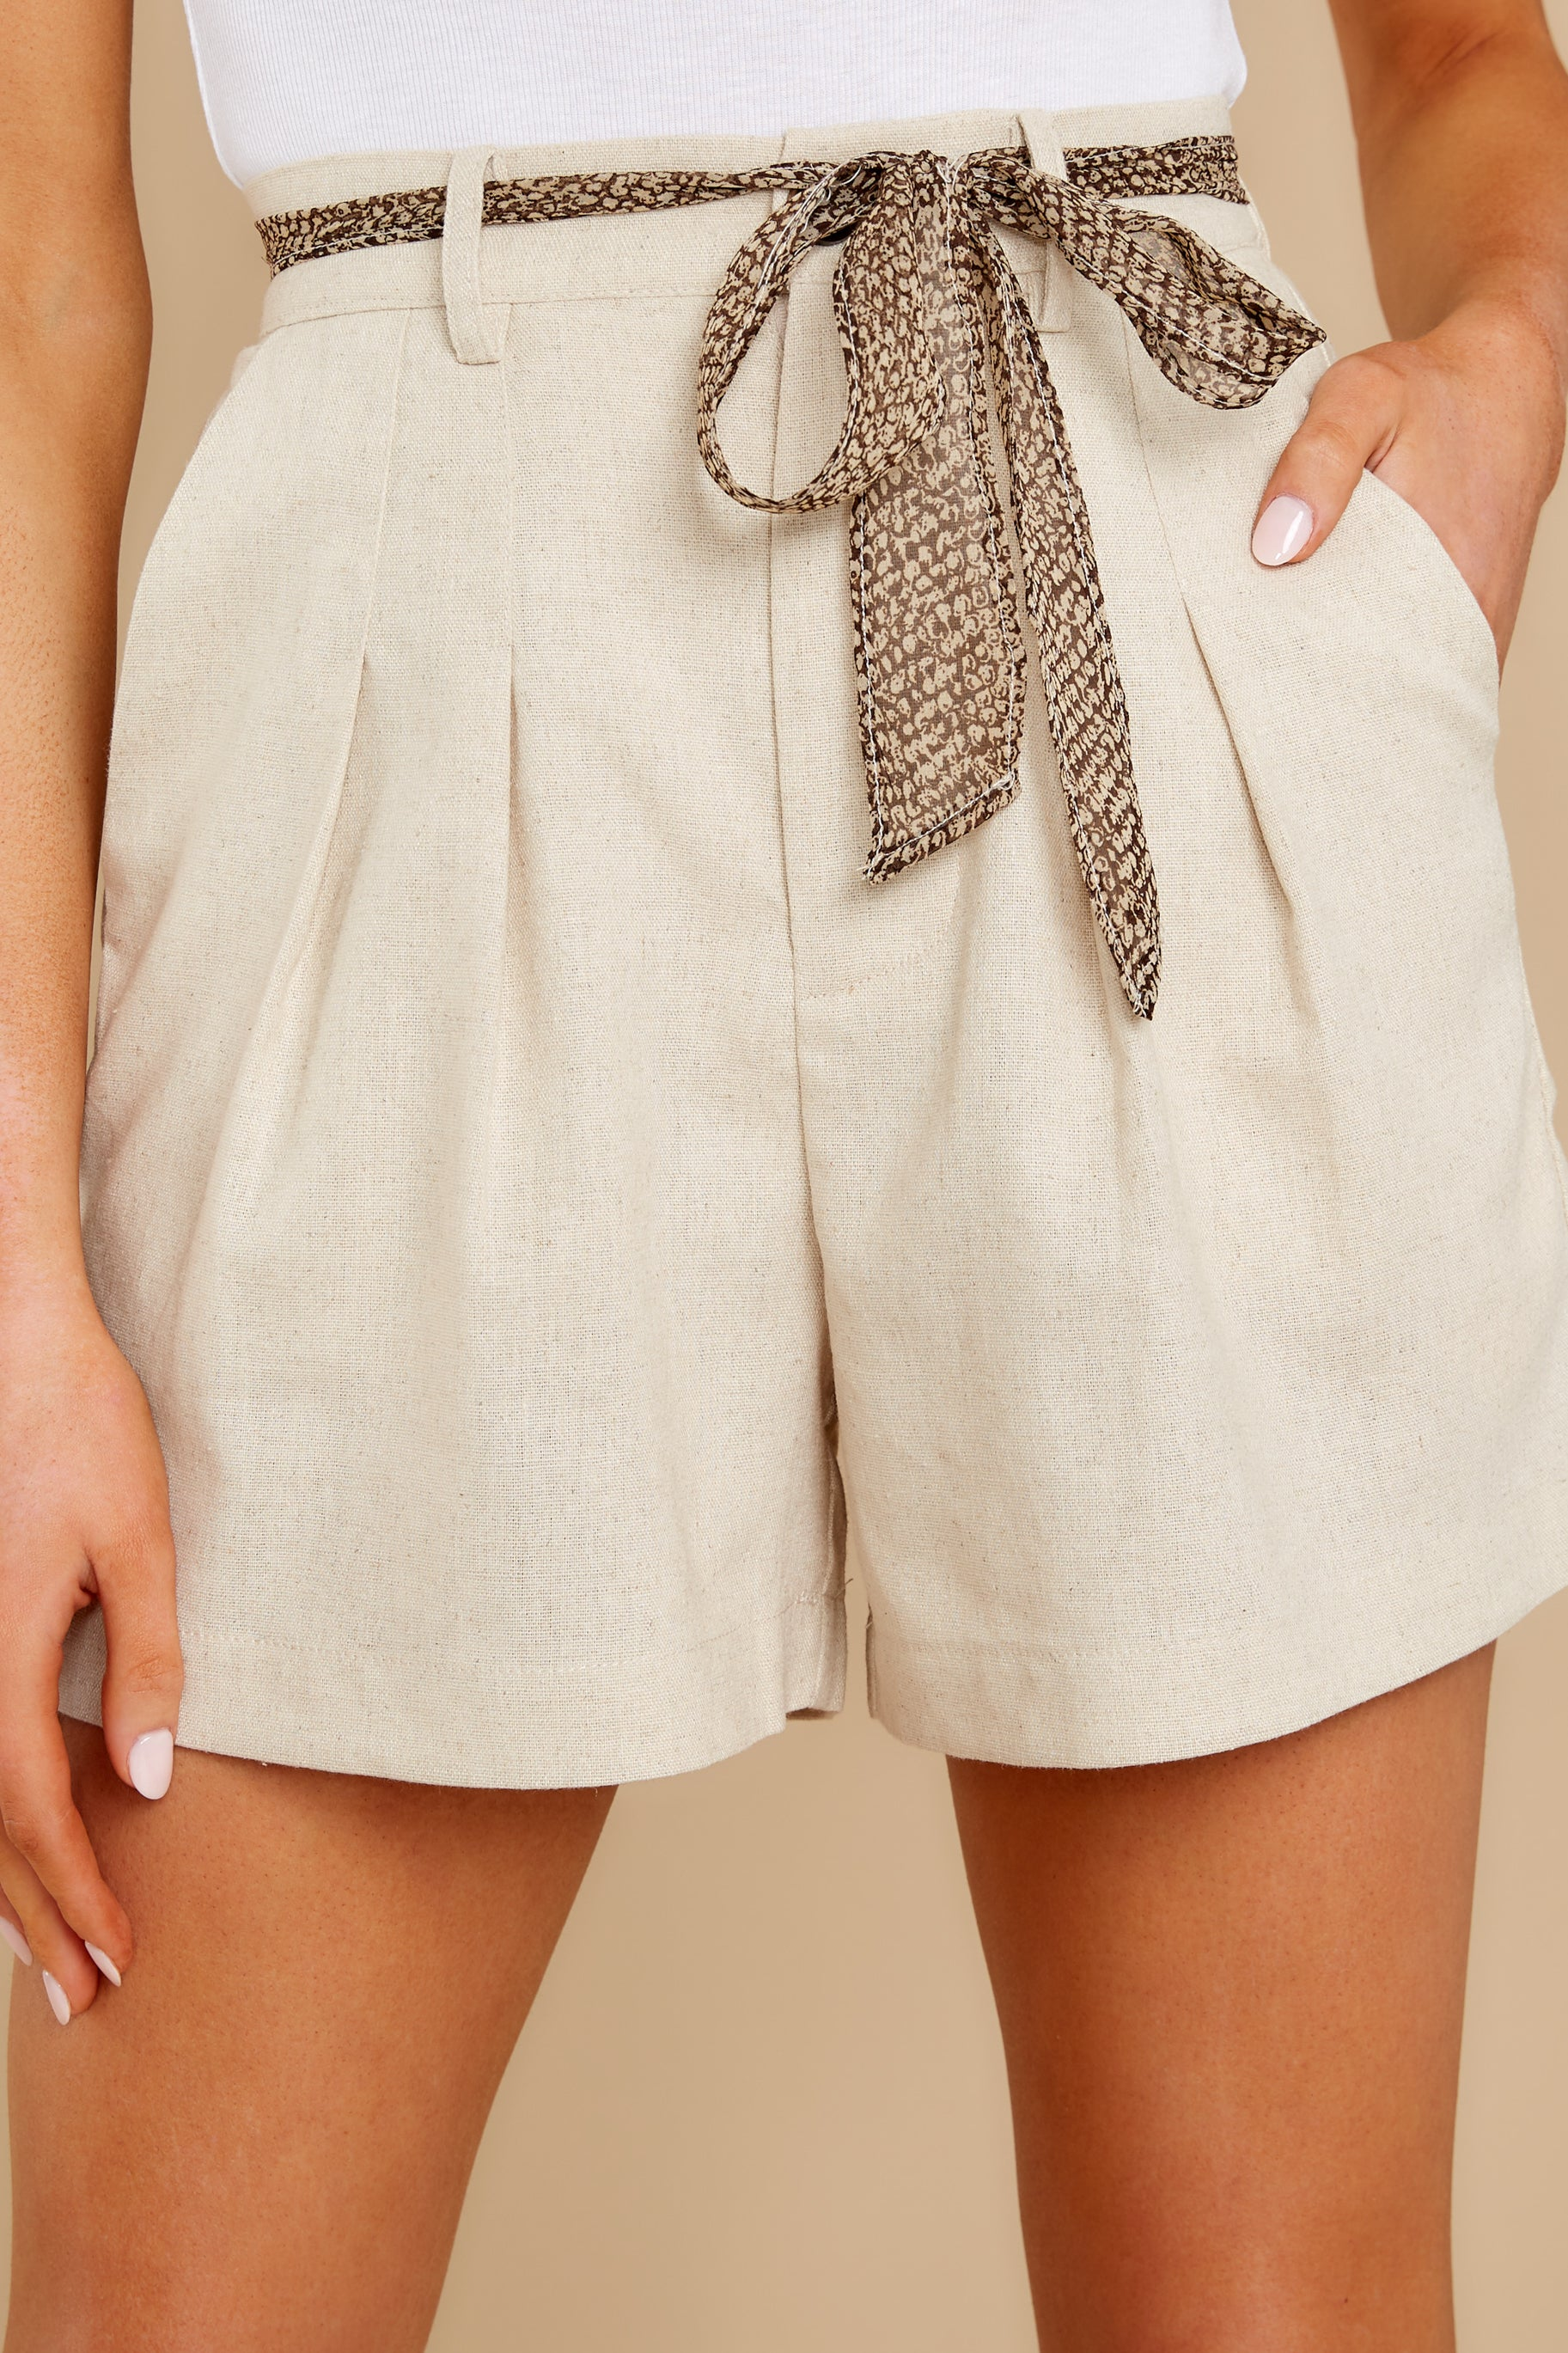 Vintage Shorts, Culottes,  Capris History Other Side Beige Trouser Shorts $79.00 AT vintagedancer.com